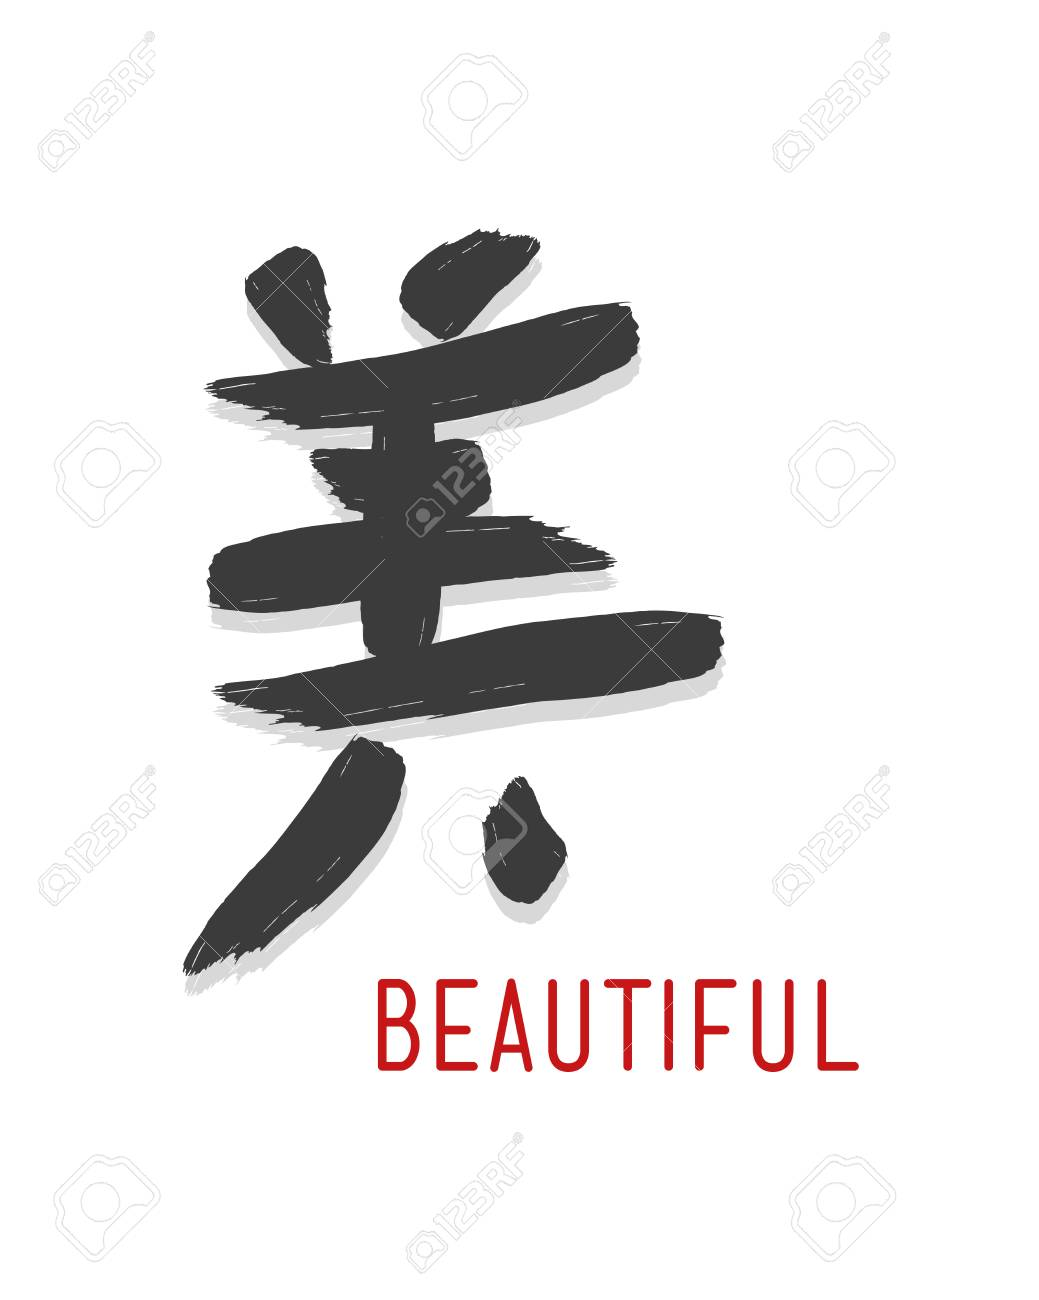 Hand Drawn Vector Illustration Of The Japanese Symbol For Beautiful